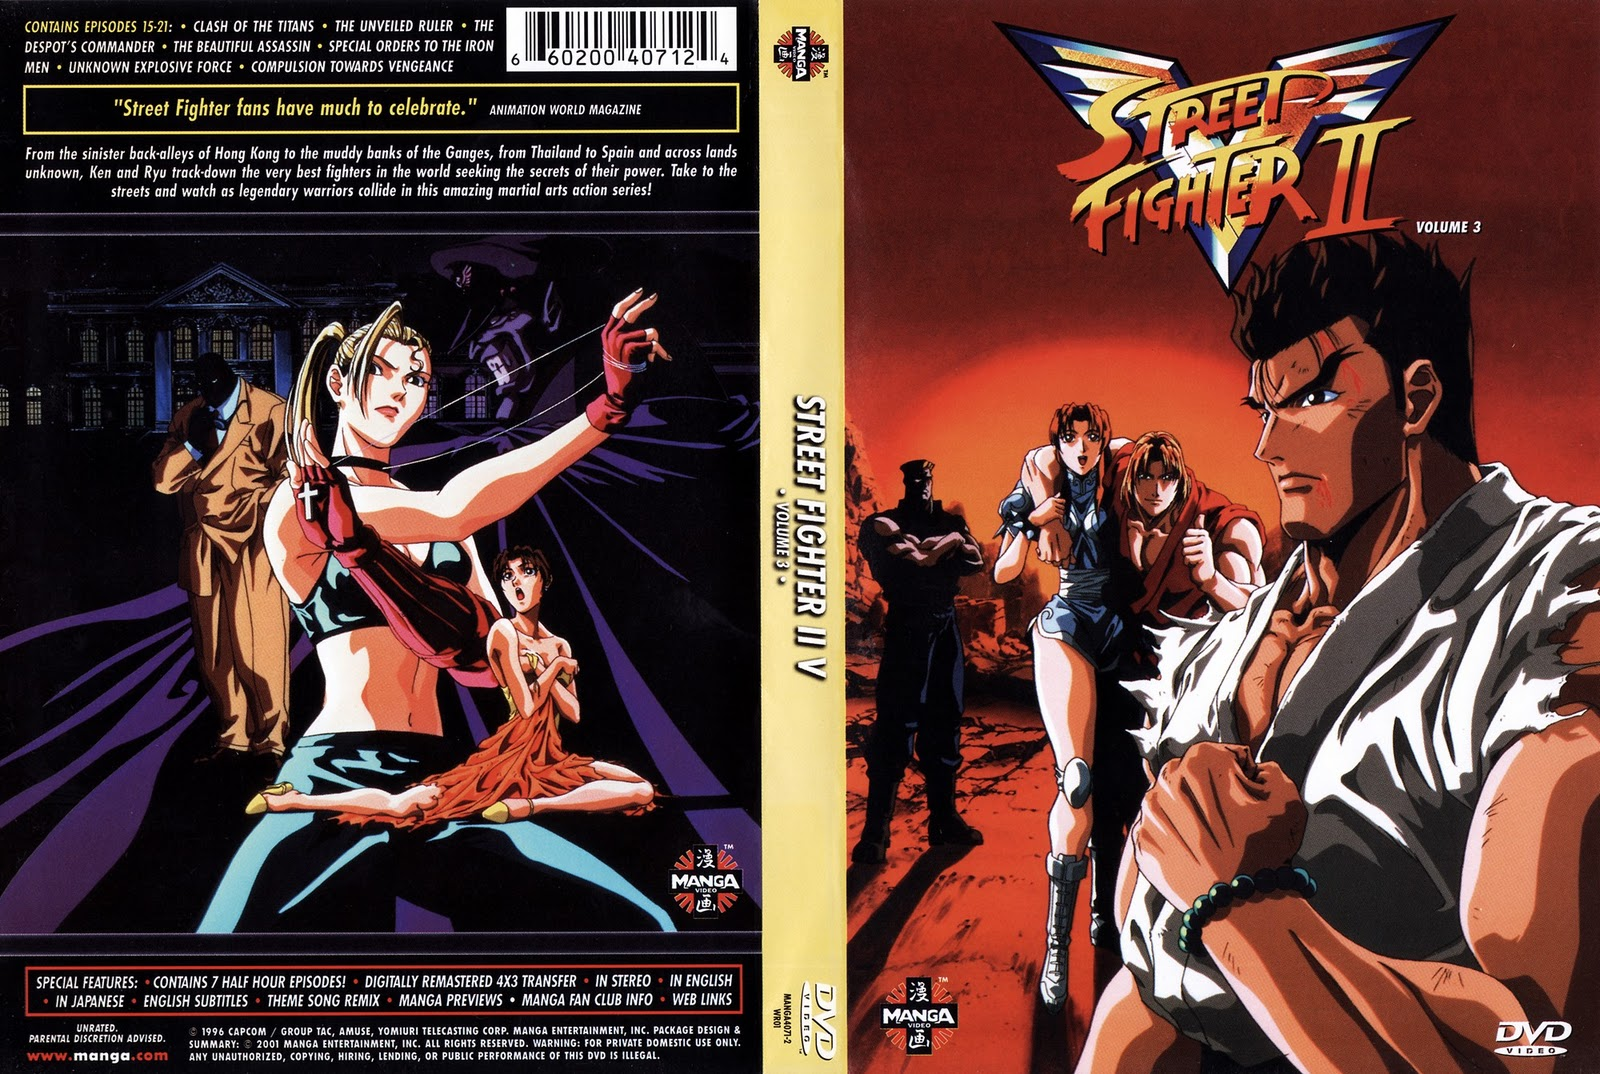 Street Fighter II: Victory Vol 3 Torrent – Dublado DVD-R Dual Áudio